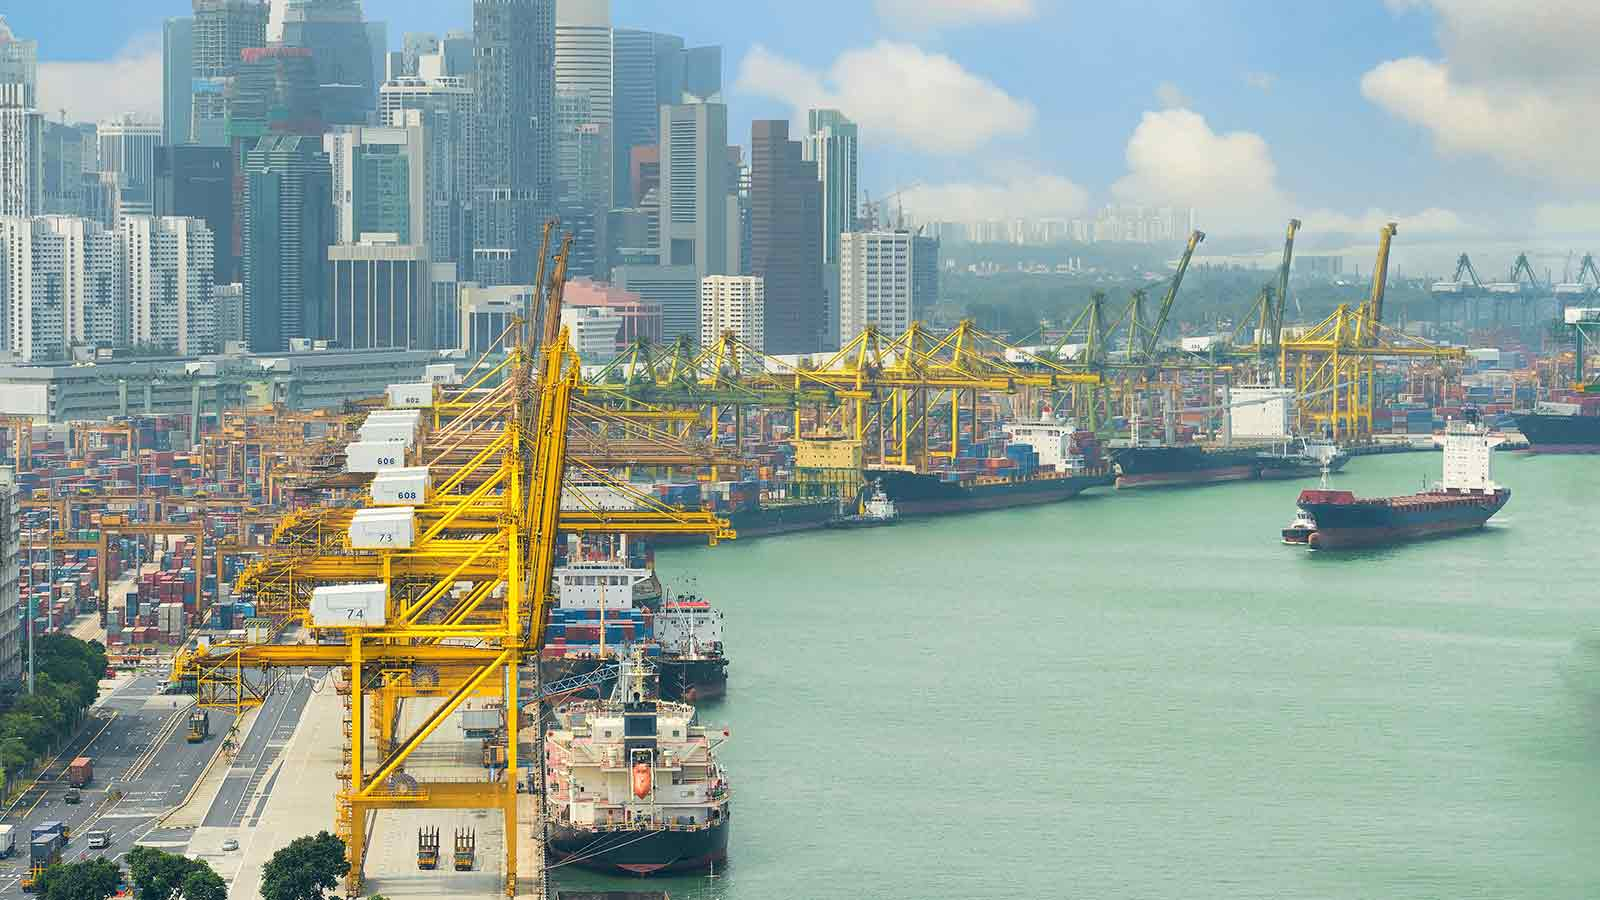 Vista of a shipping port cityscape.